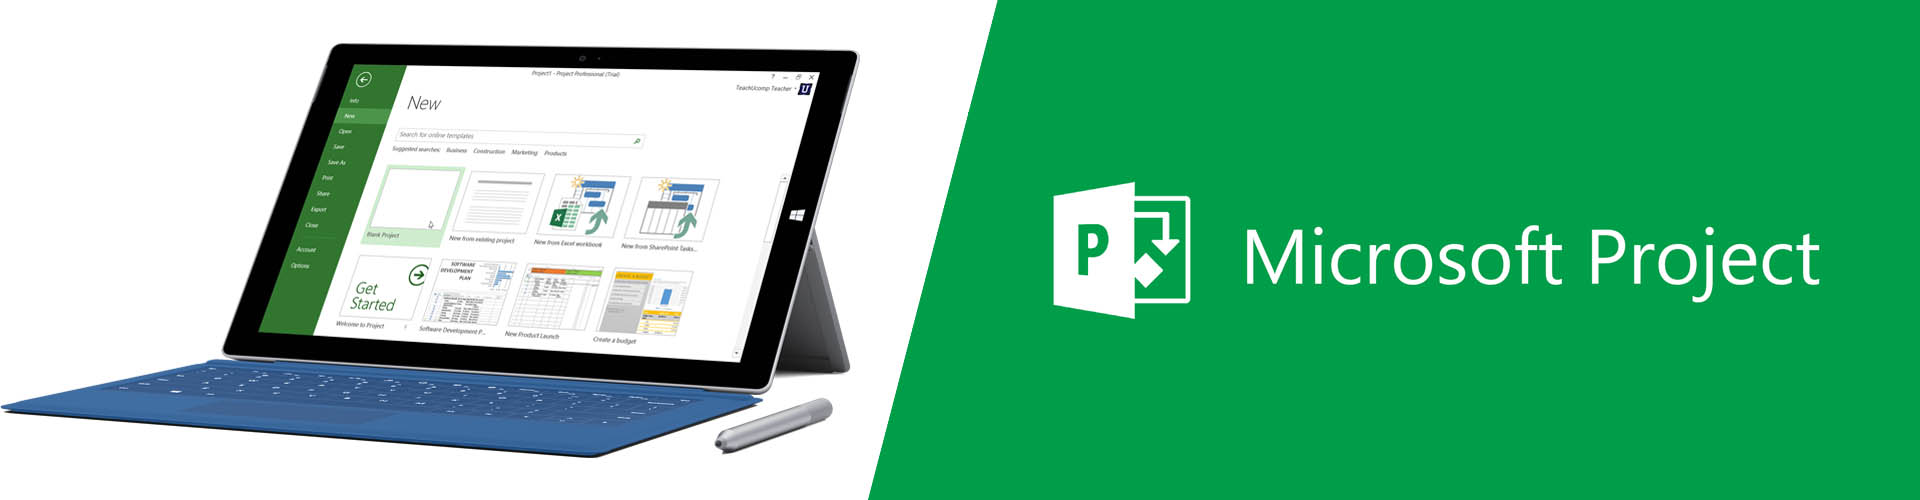 Microsoft Project banner